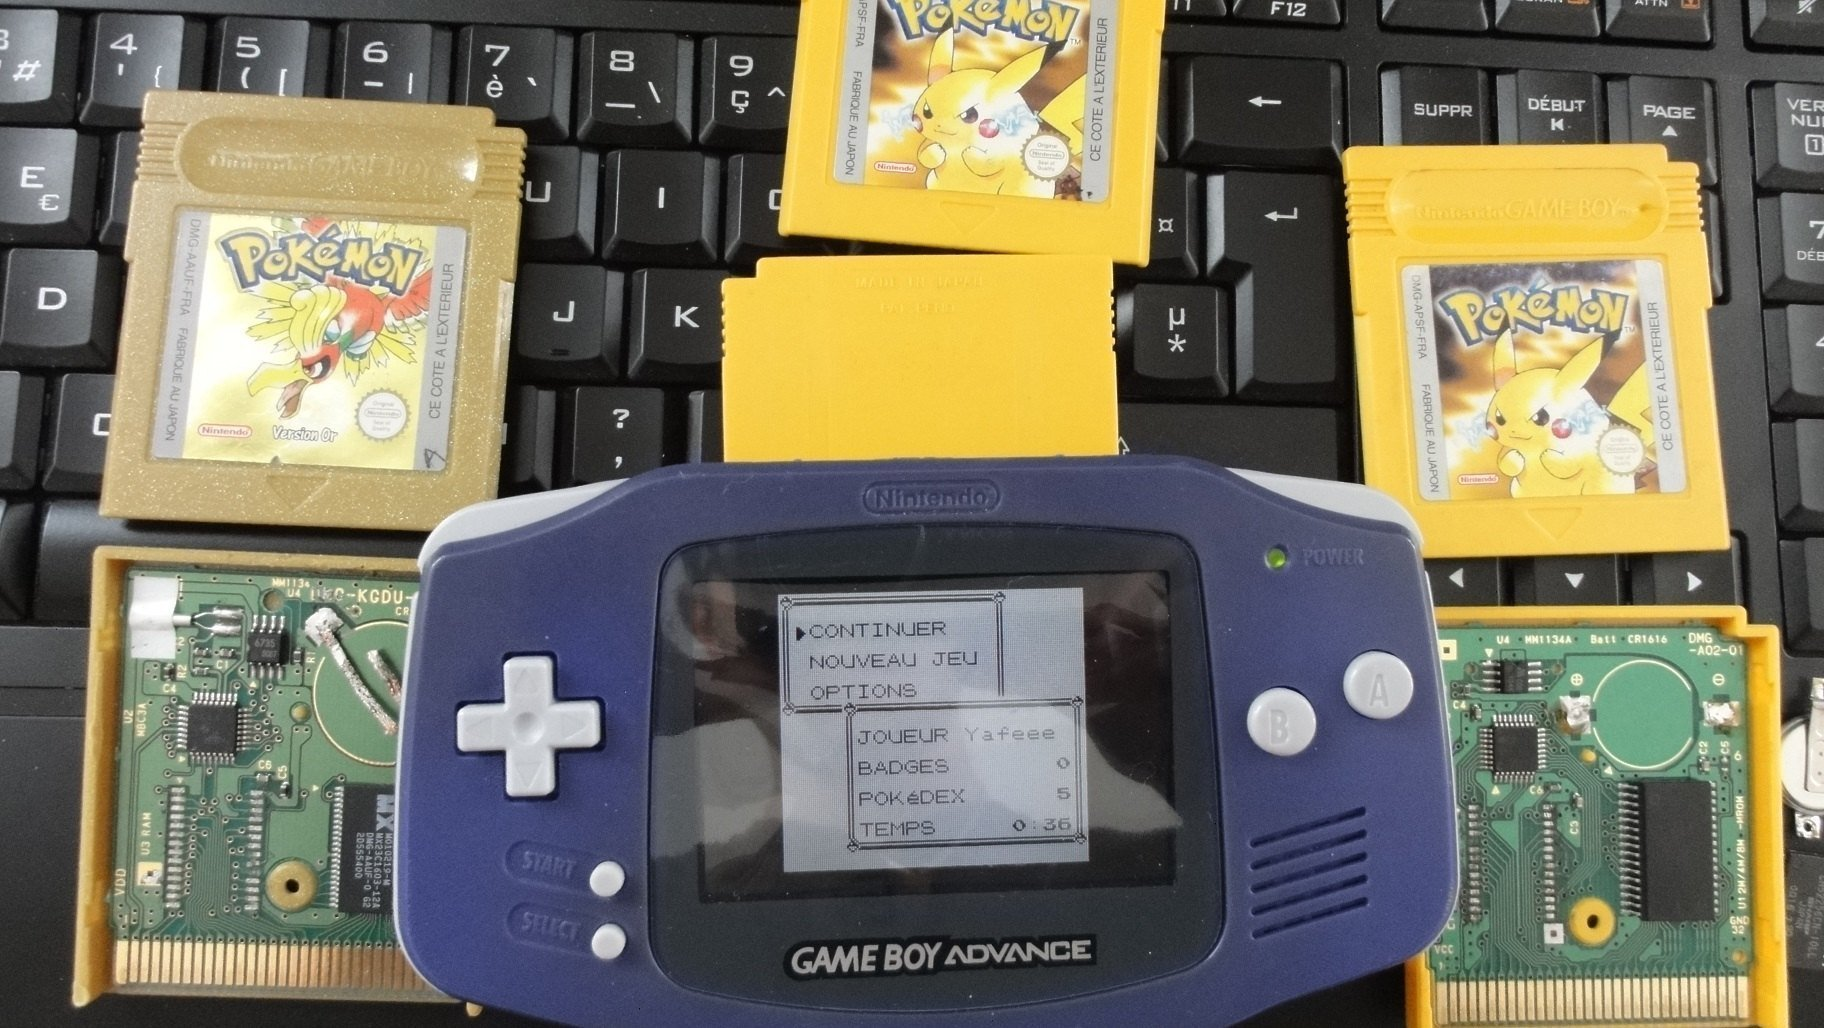 Gameboy color and pokemon yellow - Dsc01857 Jpg